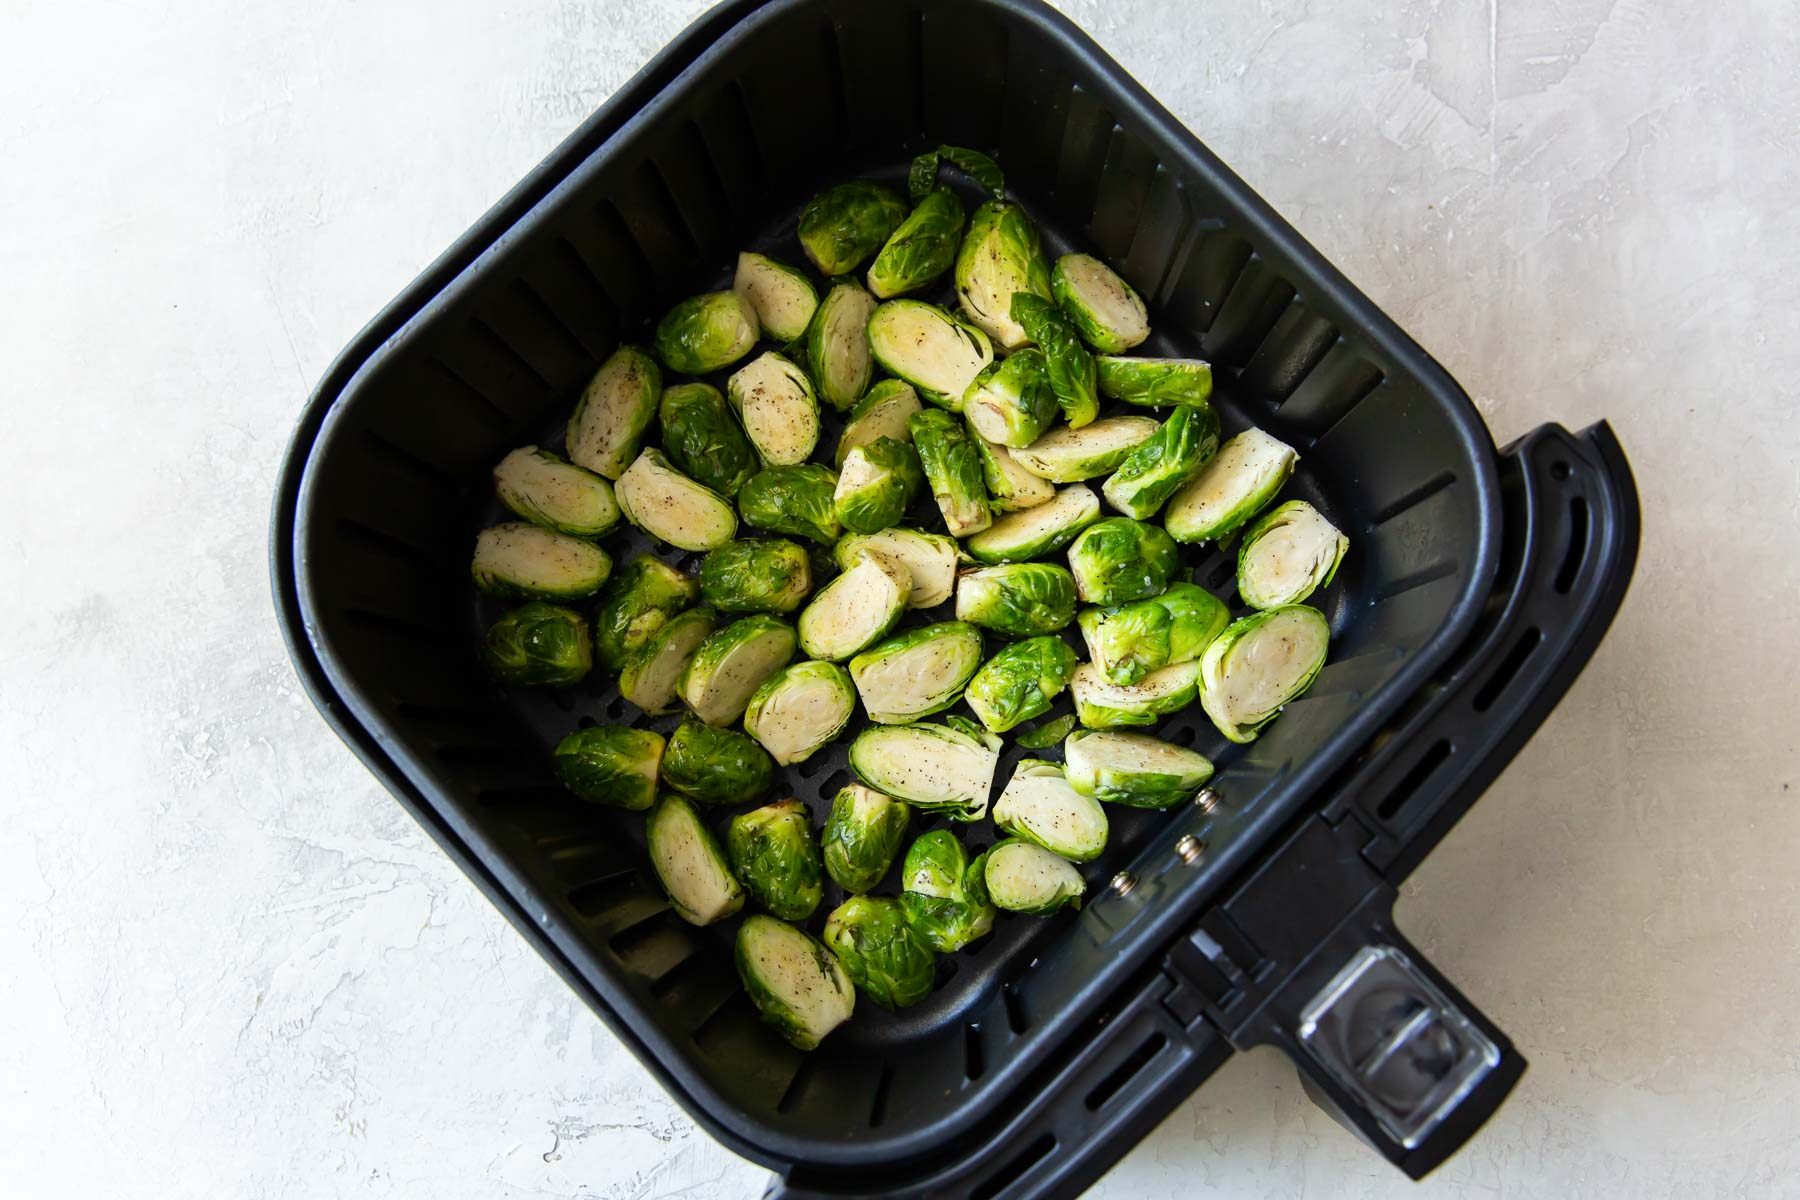 uncooked brussels sprouts in air fryer basket